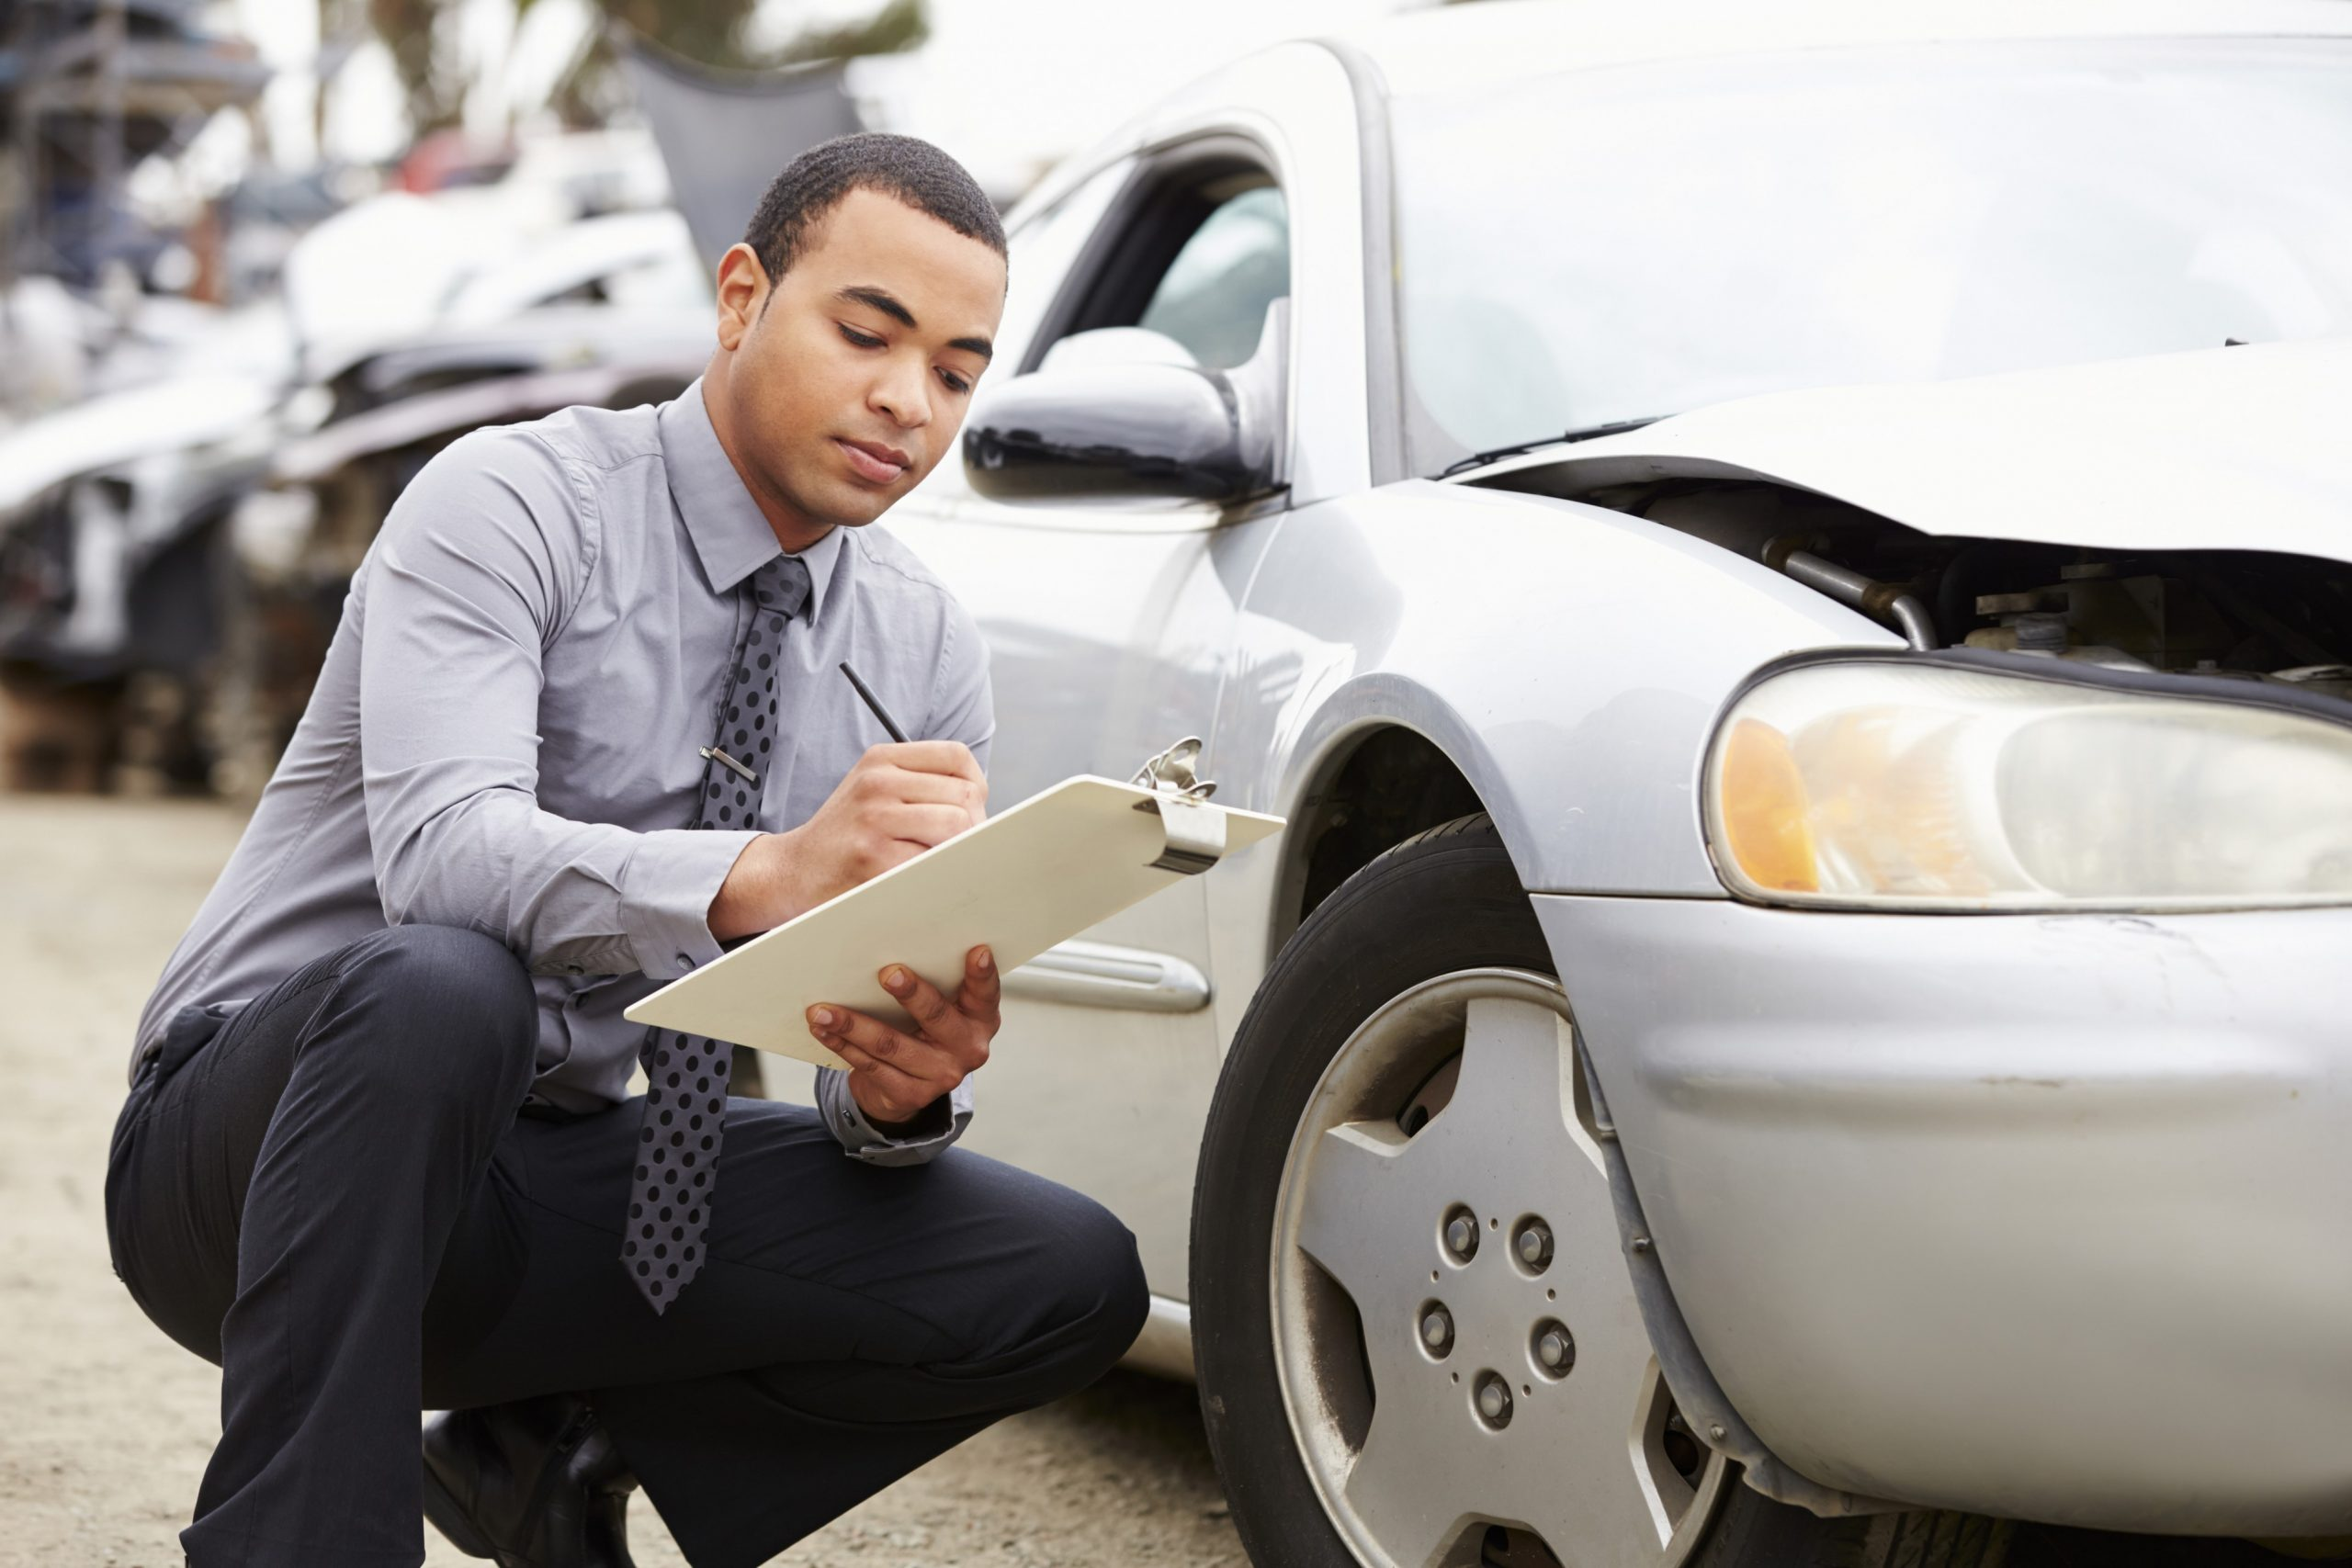 Guide for choosing between car accident lawyers in Pueblo